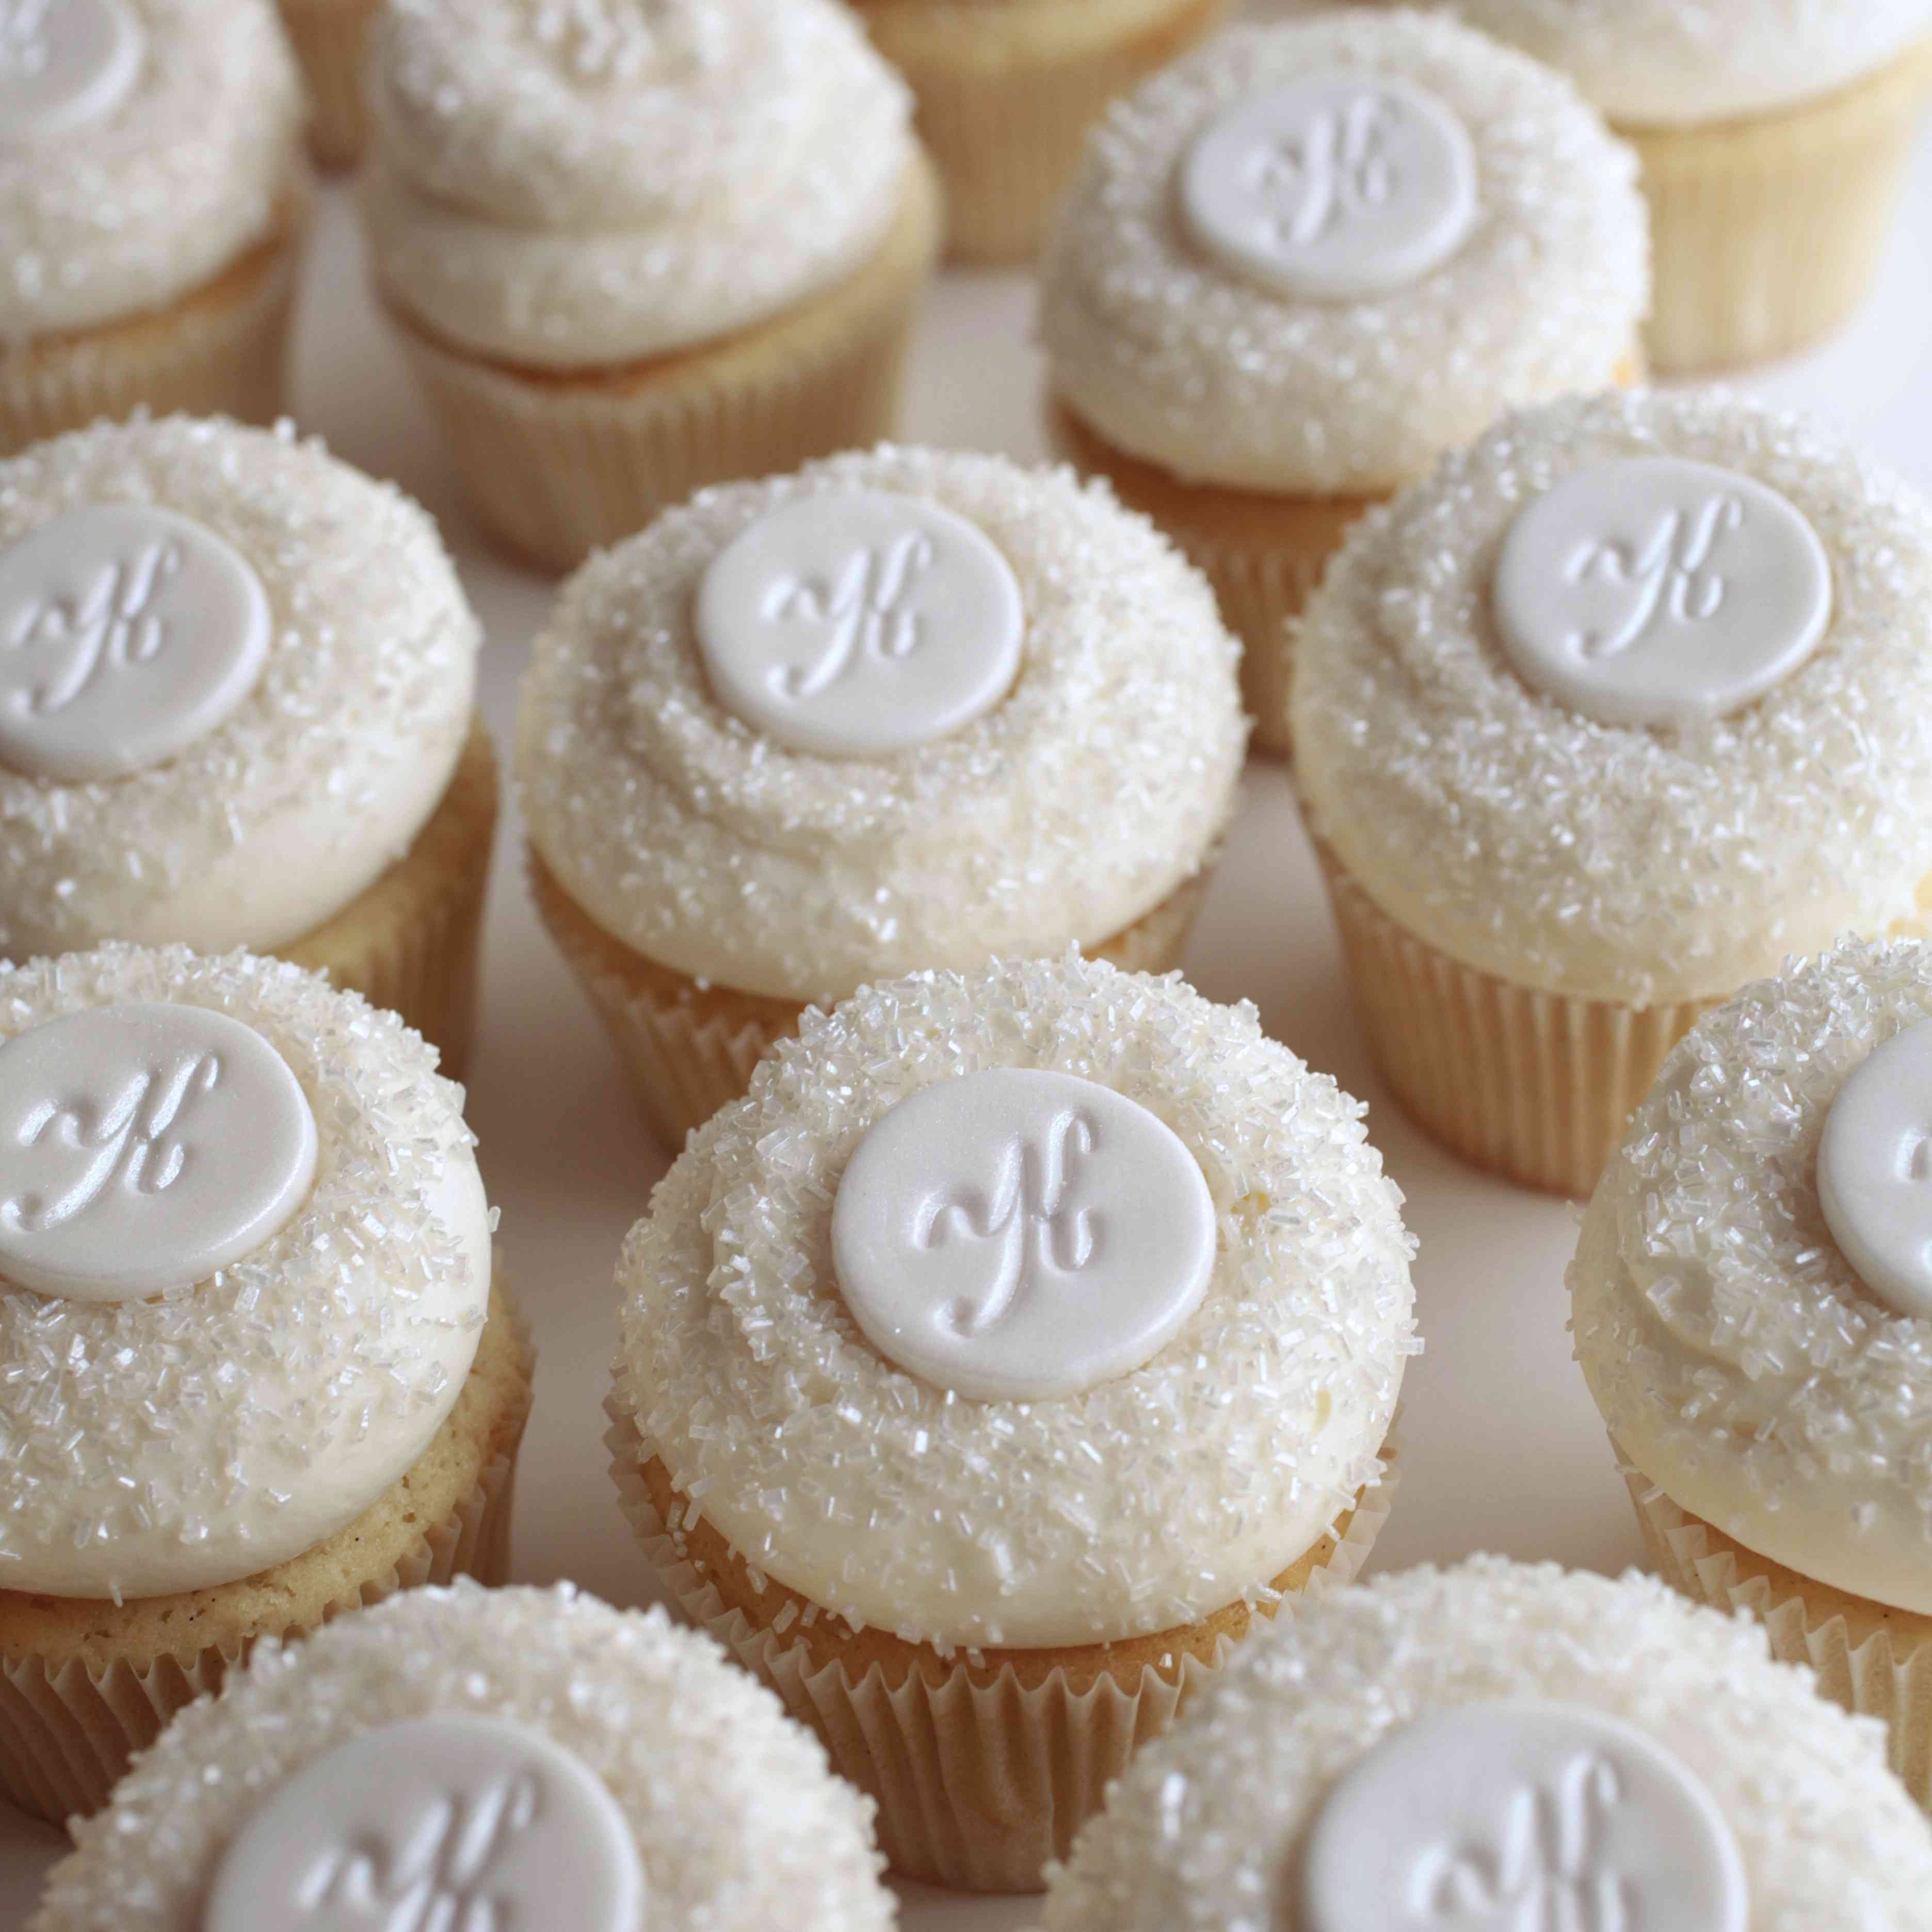 cupcakes with monograms